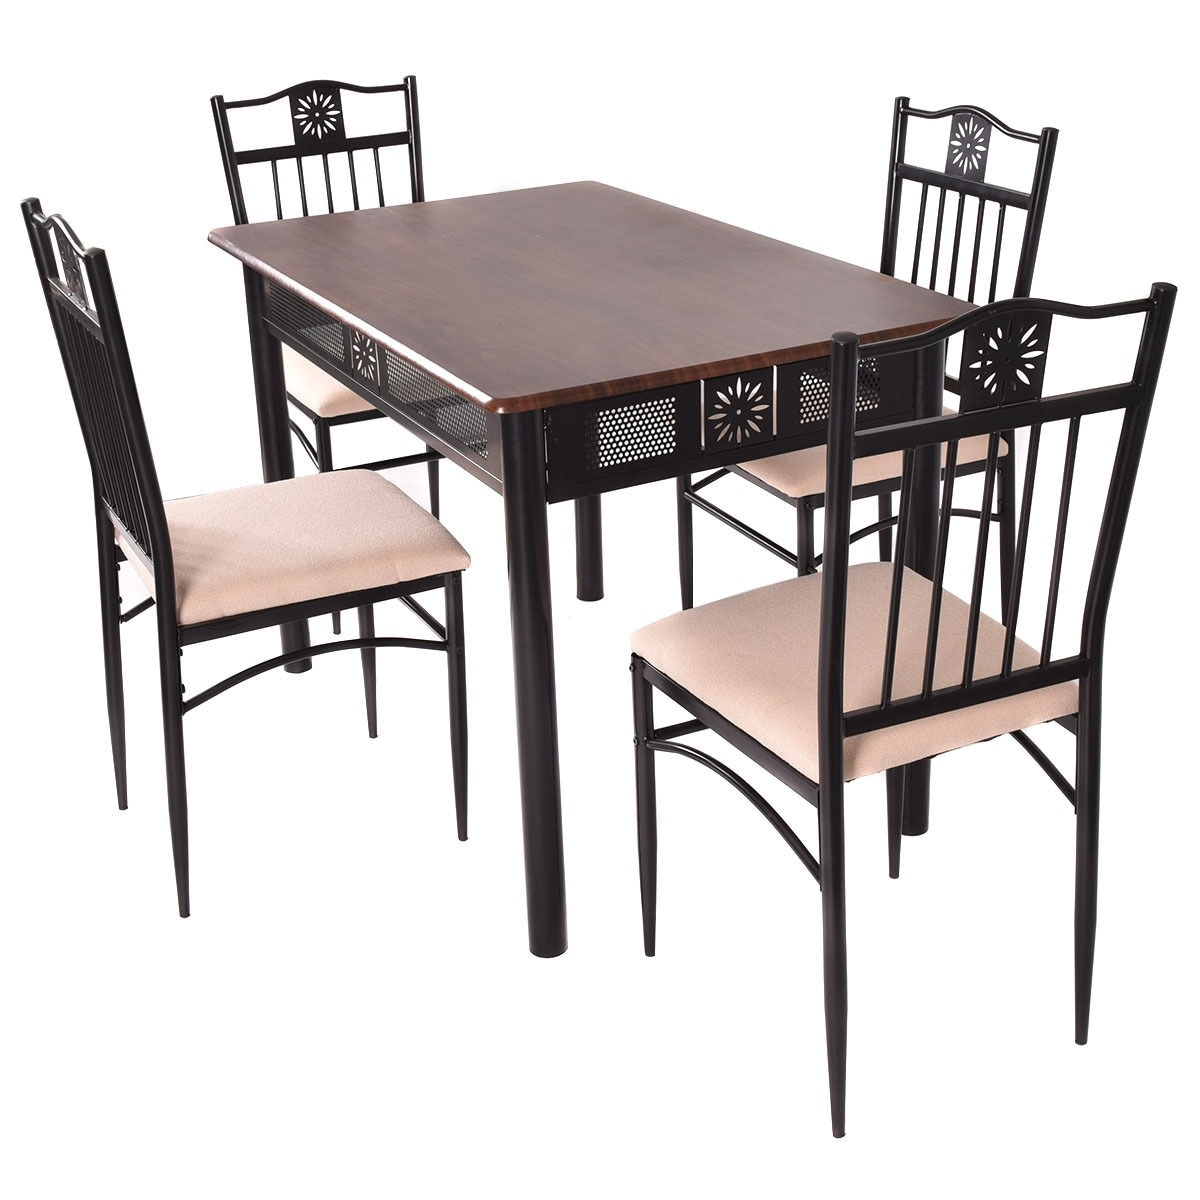 Breakfast Chairs Costway 5 Piece Dining Set Wood Metal Table And 4 Chairs Kitchen Breakfast Furniture As Pic